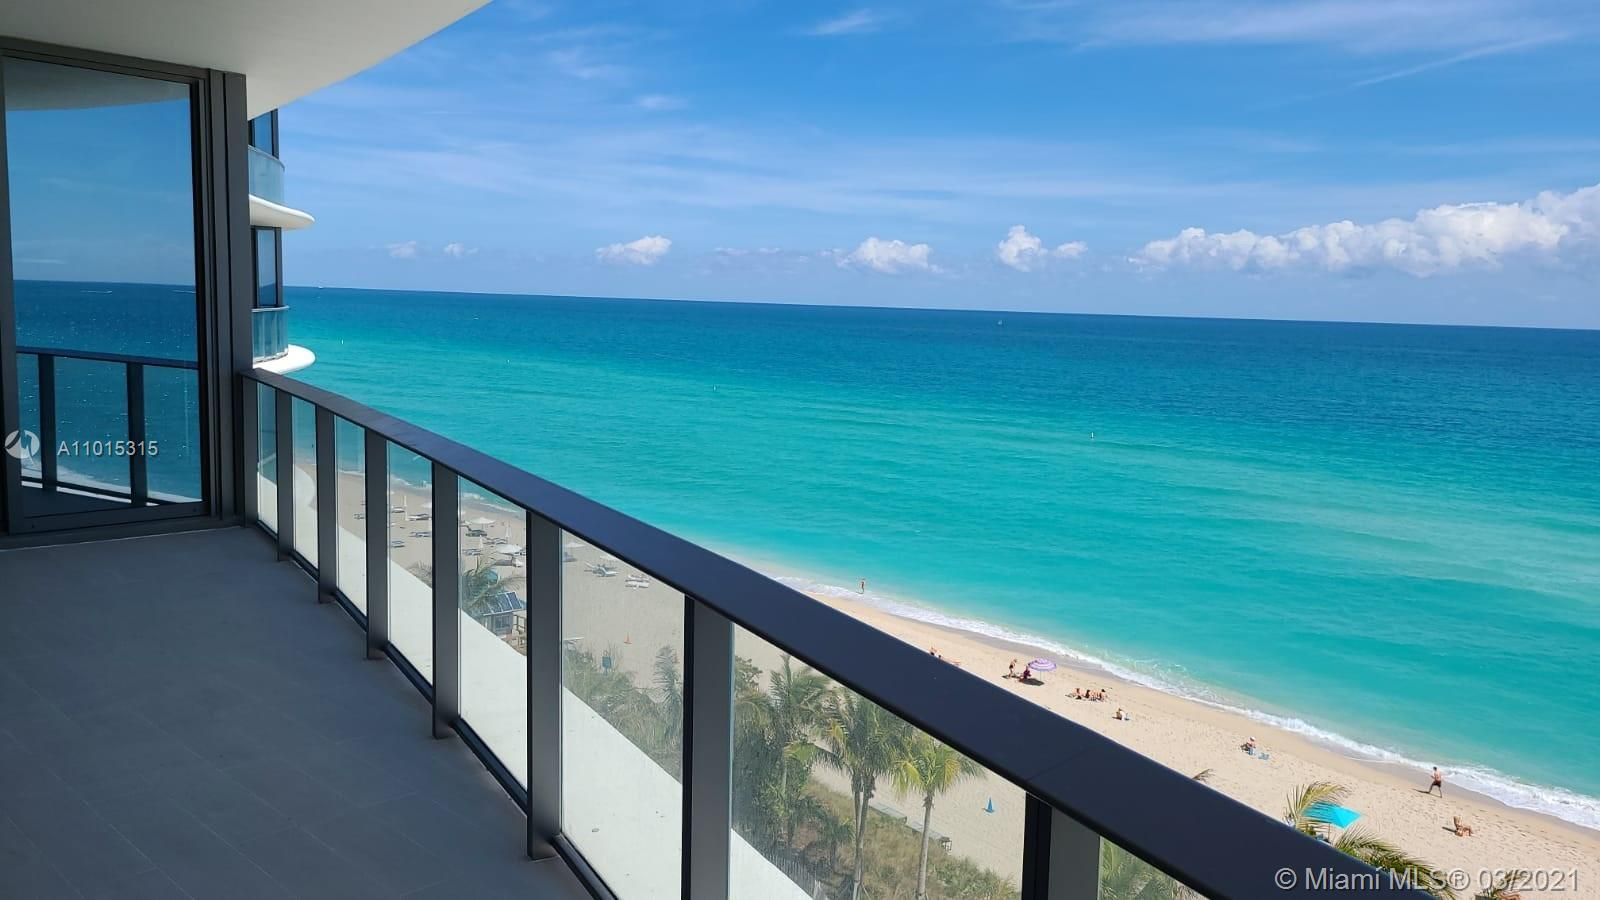 INCREDIBLE OPPORTUNITY TO PURCHASE TURN-KEY FIVE STAR RESIDENCE IN SUNNY ISLES!  RITZ CARLTON OFFERS THE BEST POSSIBLE AMENITIES YOU CAN IMAGINE. SPECTACULAR OCEAN VIEW FROM THIS 2 BED PLUS DEN, 2.5 BATHS. THIS RESIDENCE IS UNDER REMODELING WITH THE BEST HIGH END FINISHES. WILL BE DELIVERED TO NEW OWNER READY TO MOVE IN. BEST PRICE IN THE BUILDING, WON'T LAST!!!